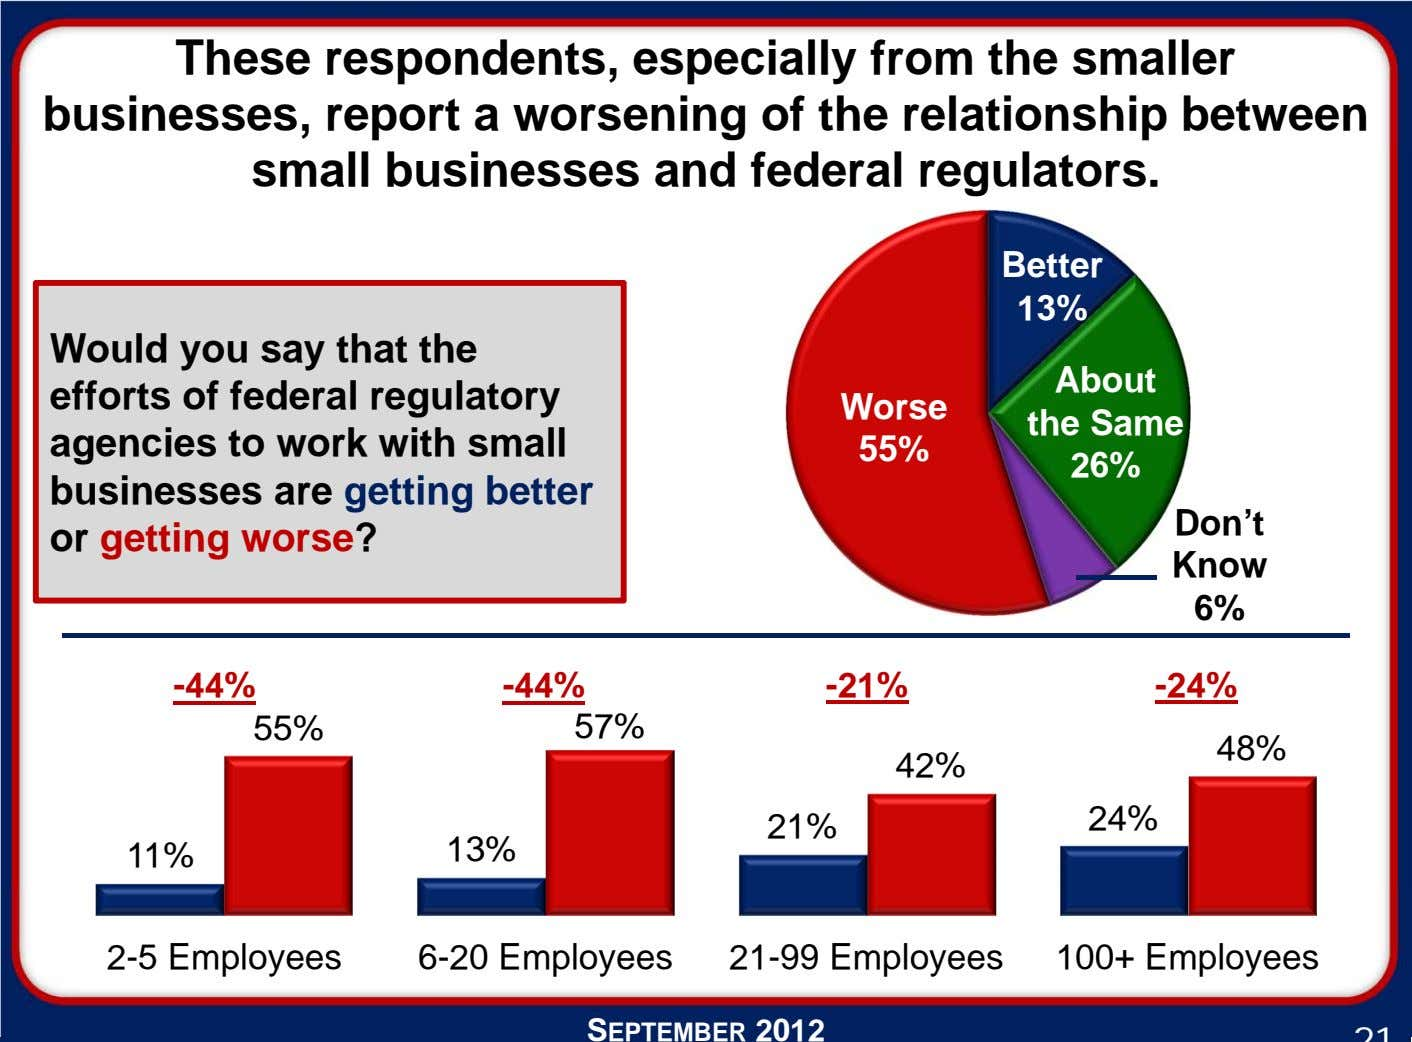 These respondents, especially from the smaller businesses, report a worsening of the relationship between small